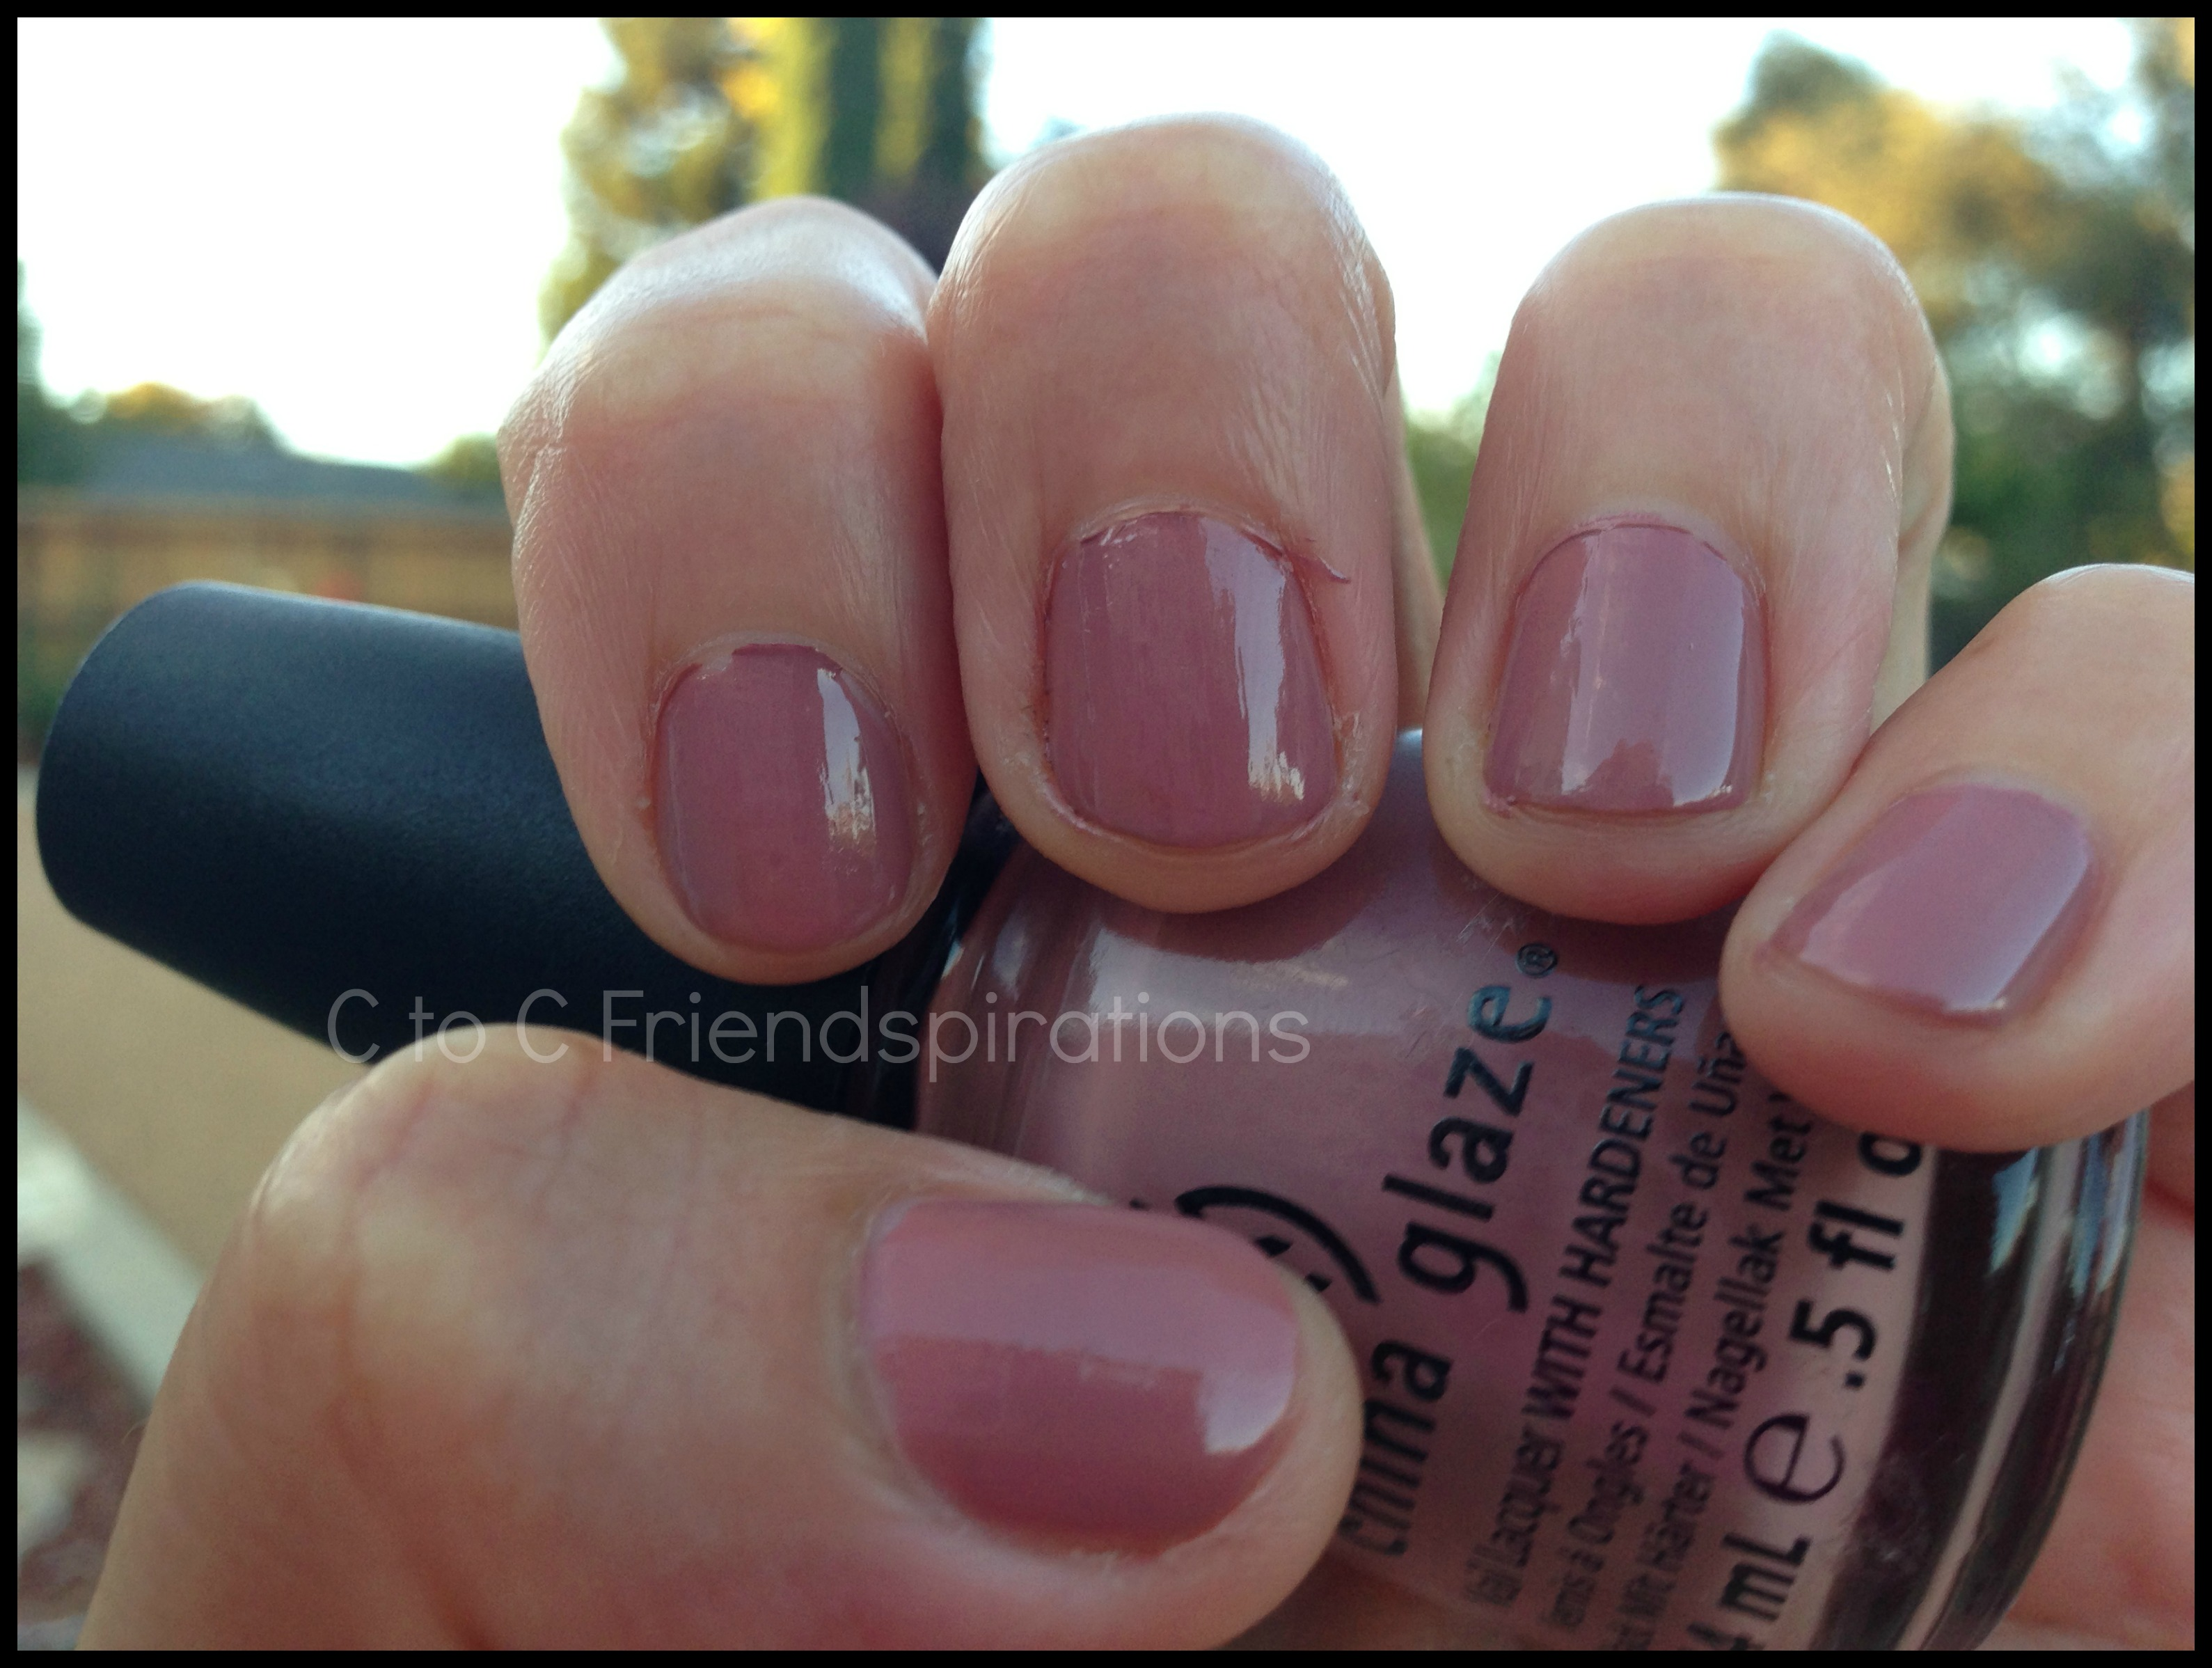 china glaze | C to C Friendspirations